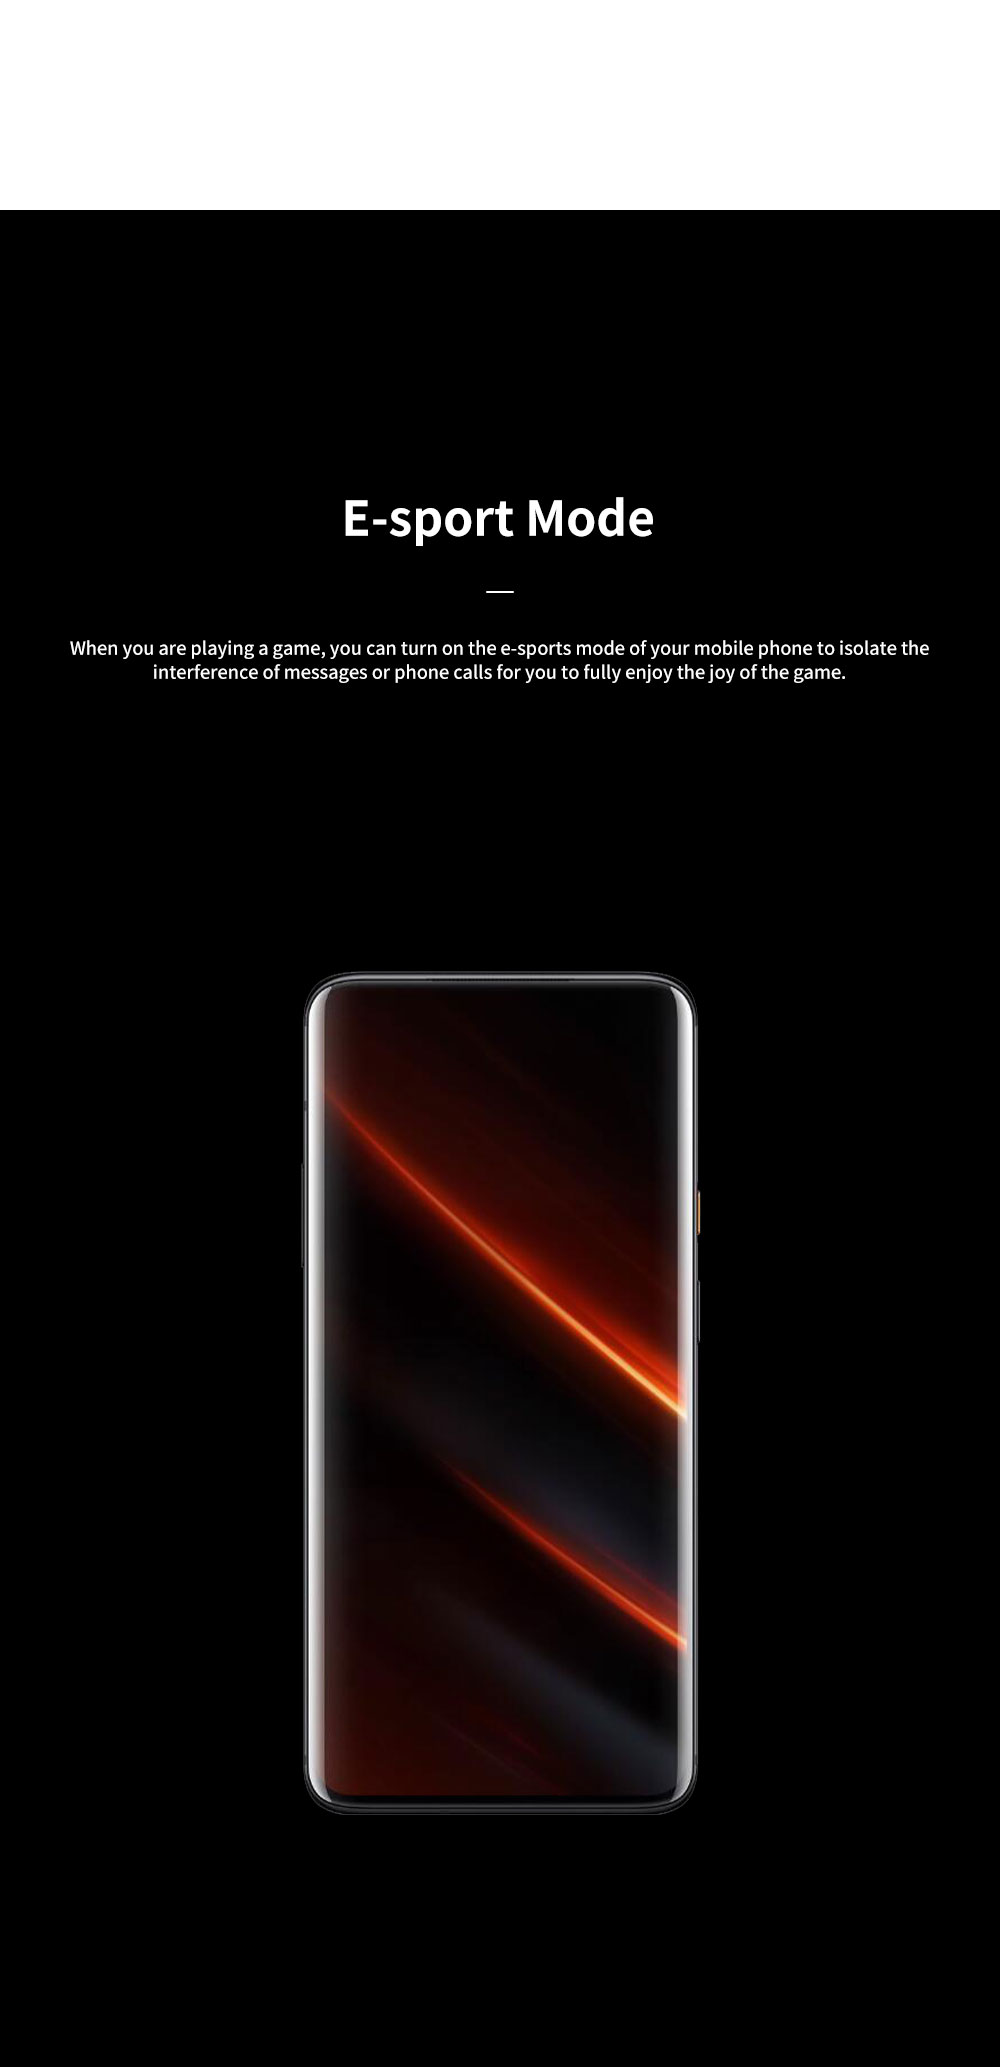 OnePlus 7T Pro Mobile Phone Smartphone with 2K+90Hz Screen 855 Snapdragon Processor 48 Million Camera Large Battery Capacity Haptic Vibrating Motor 7